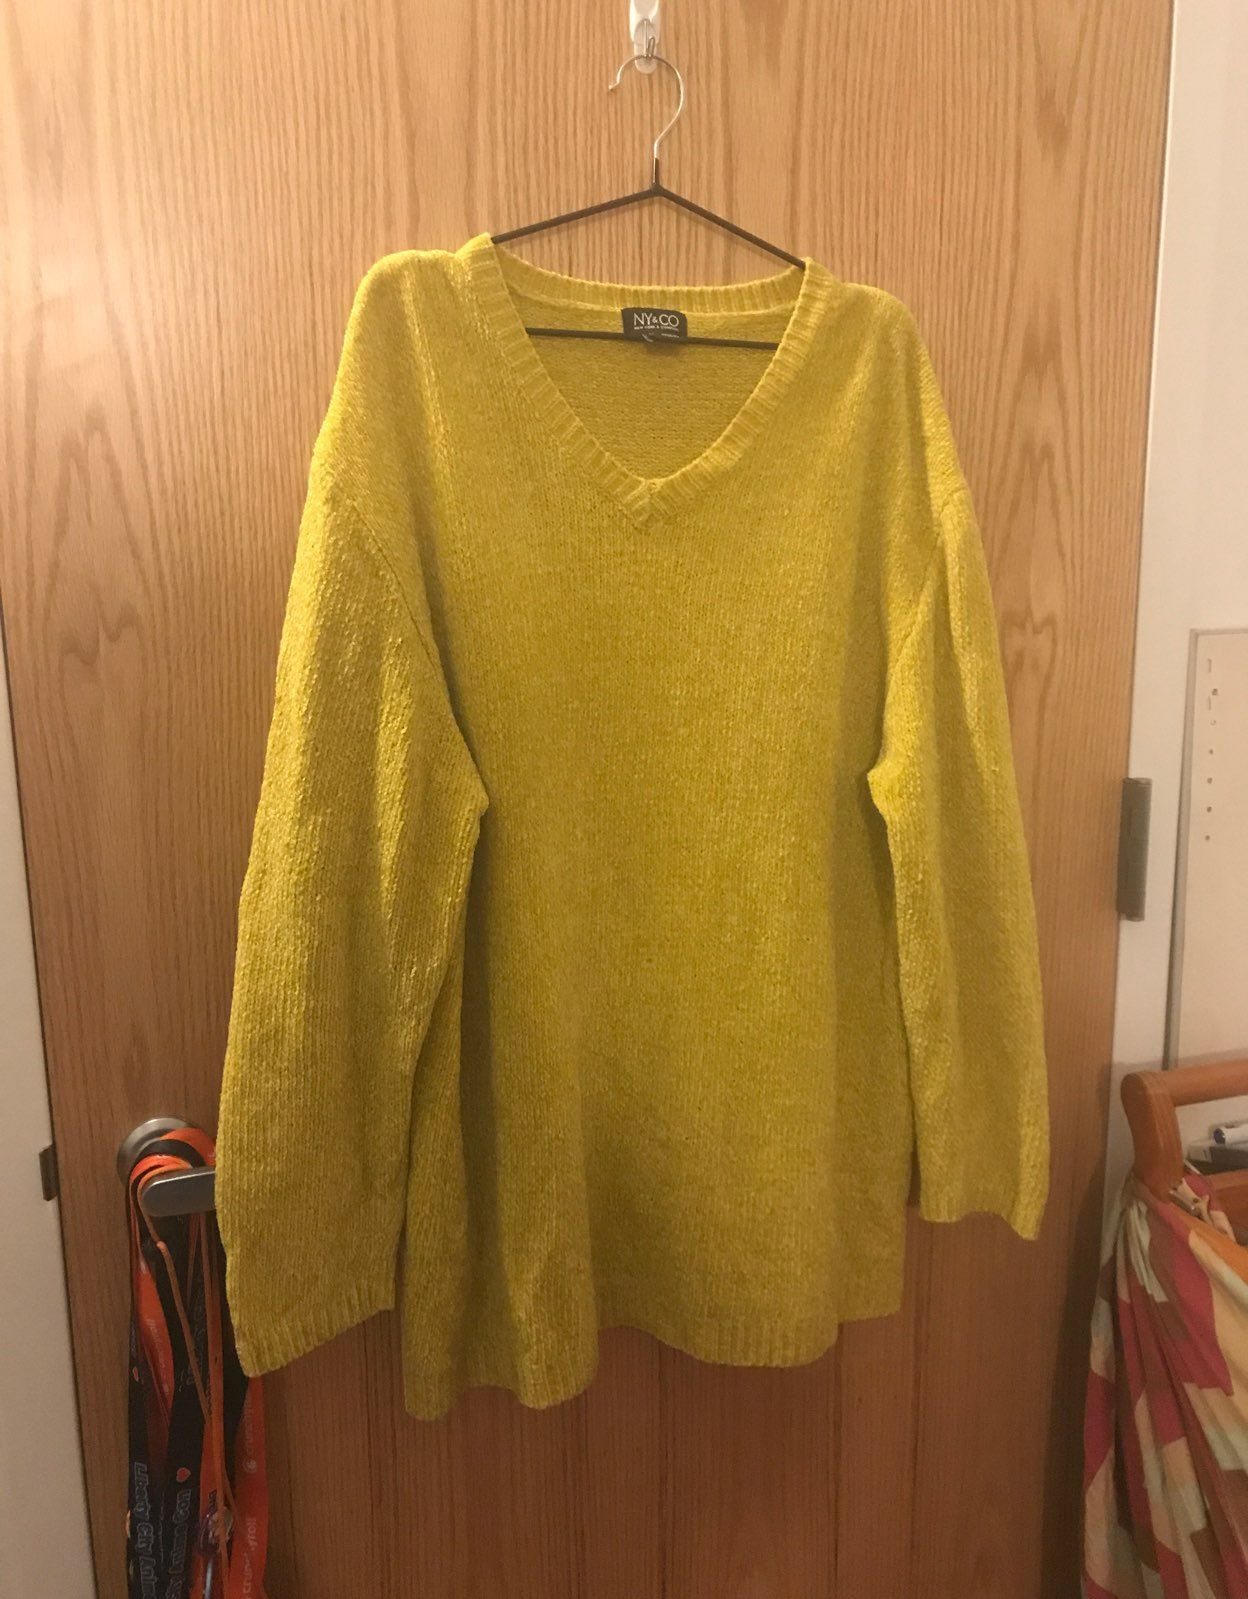 NY&CO YELLOW/GREEN SWEATER (SIZE XL) - Mercari: BUY & SELL THINGS ...